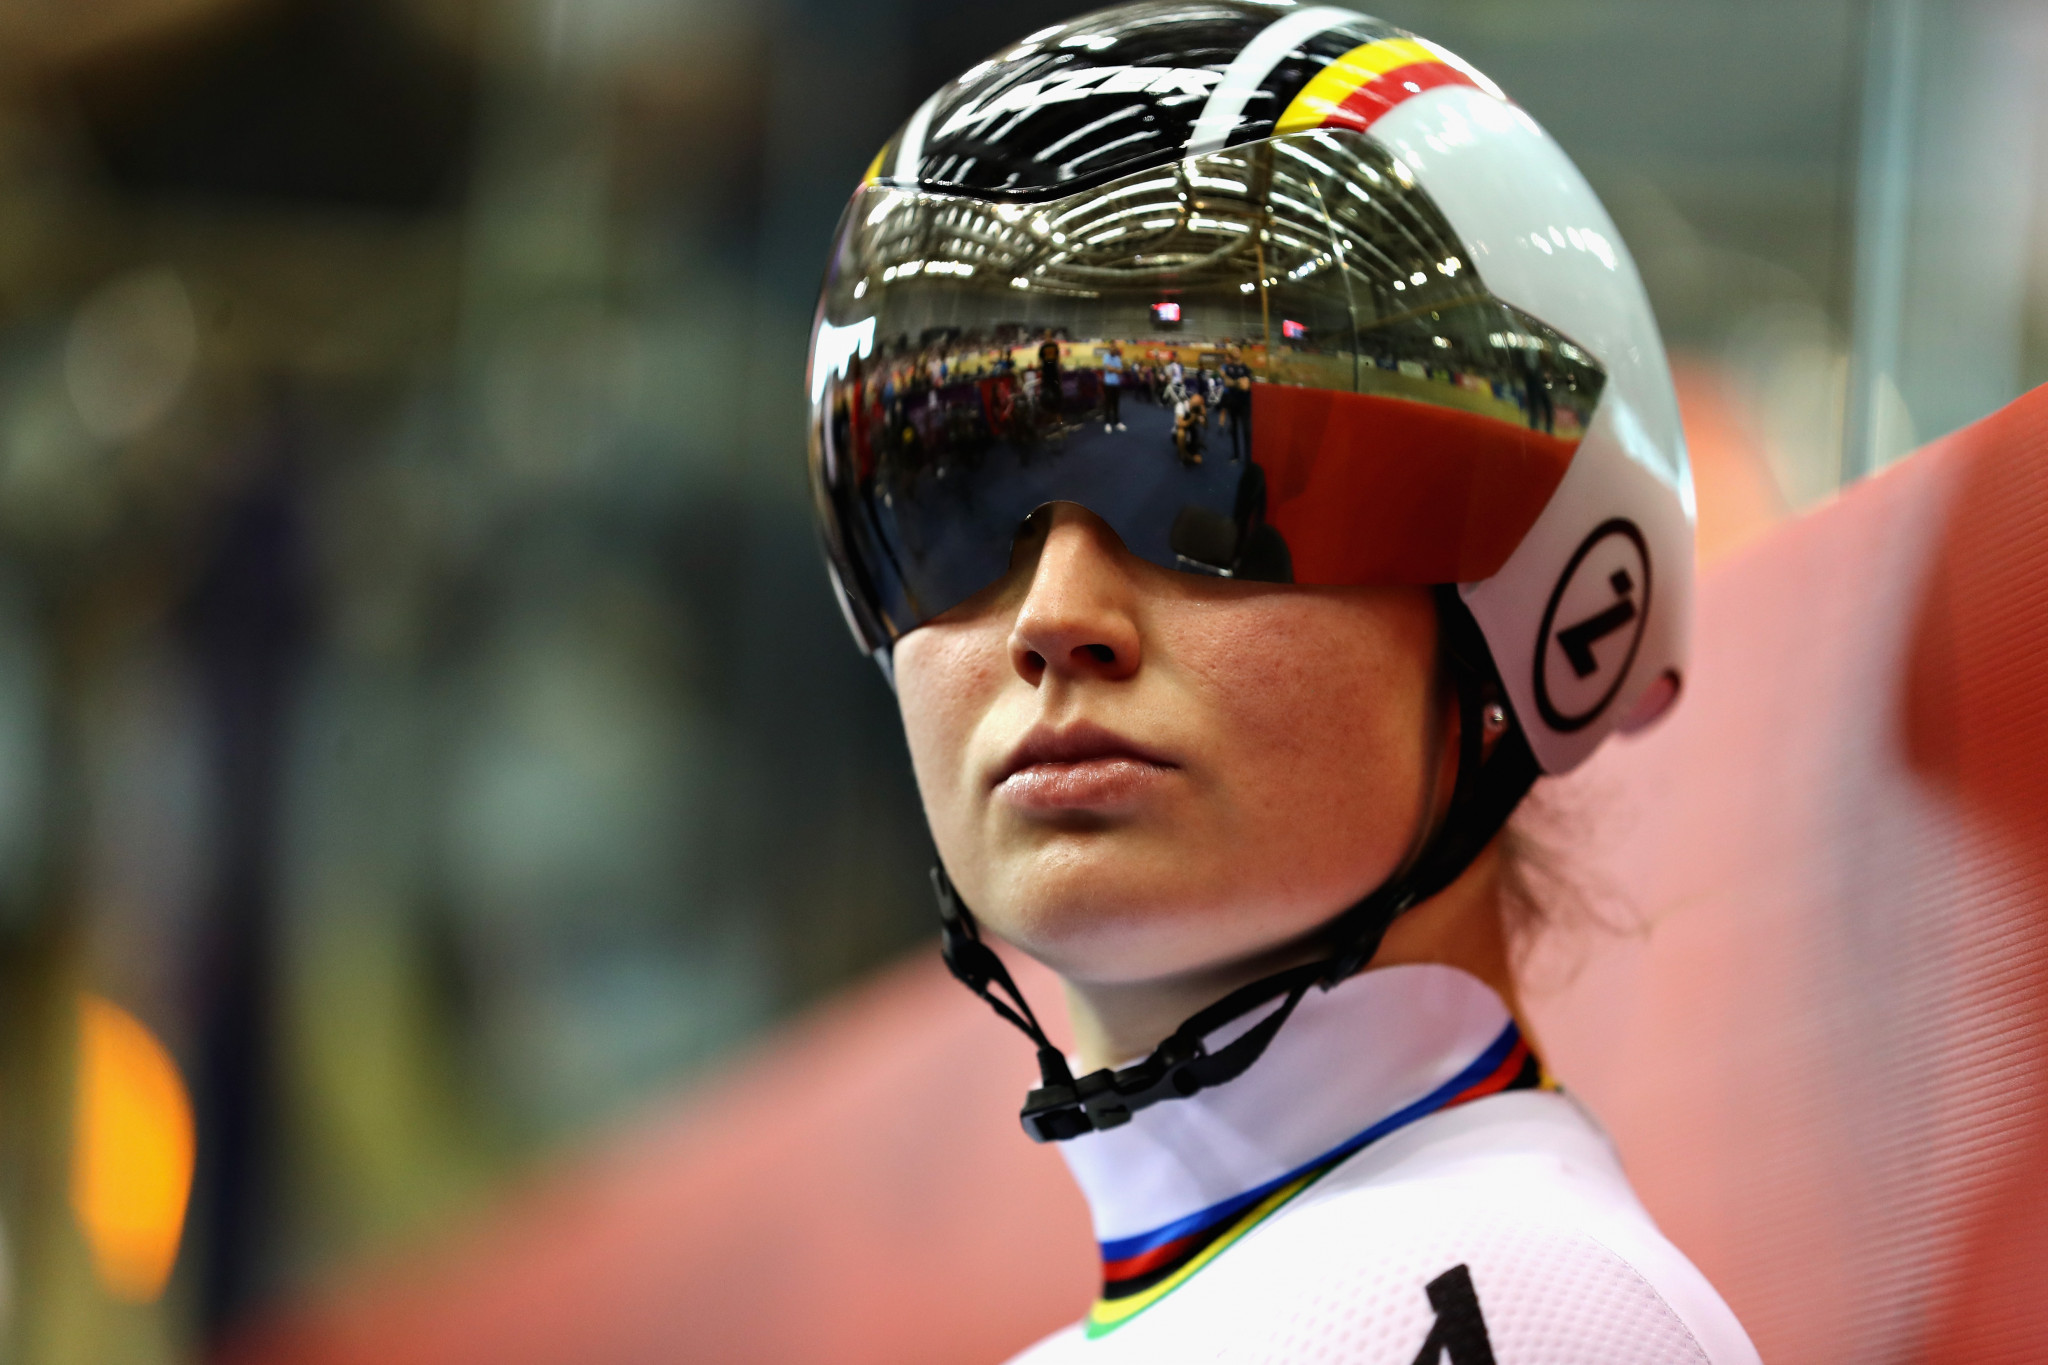 Cycling world champion Nicky Degrendele has been named in Belgium's team for the Minsk 2019 European Games ©Getty Images